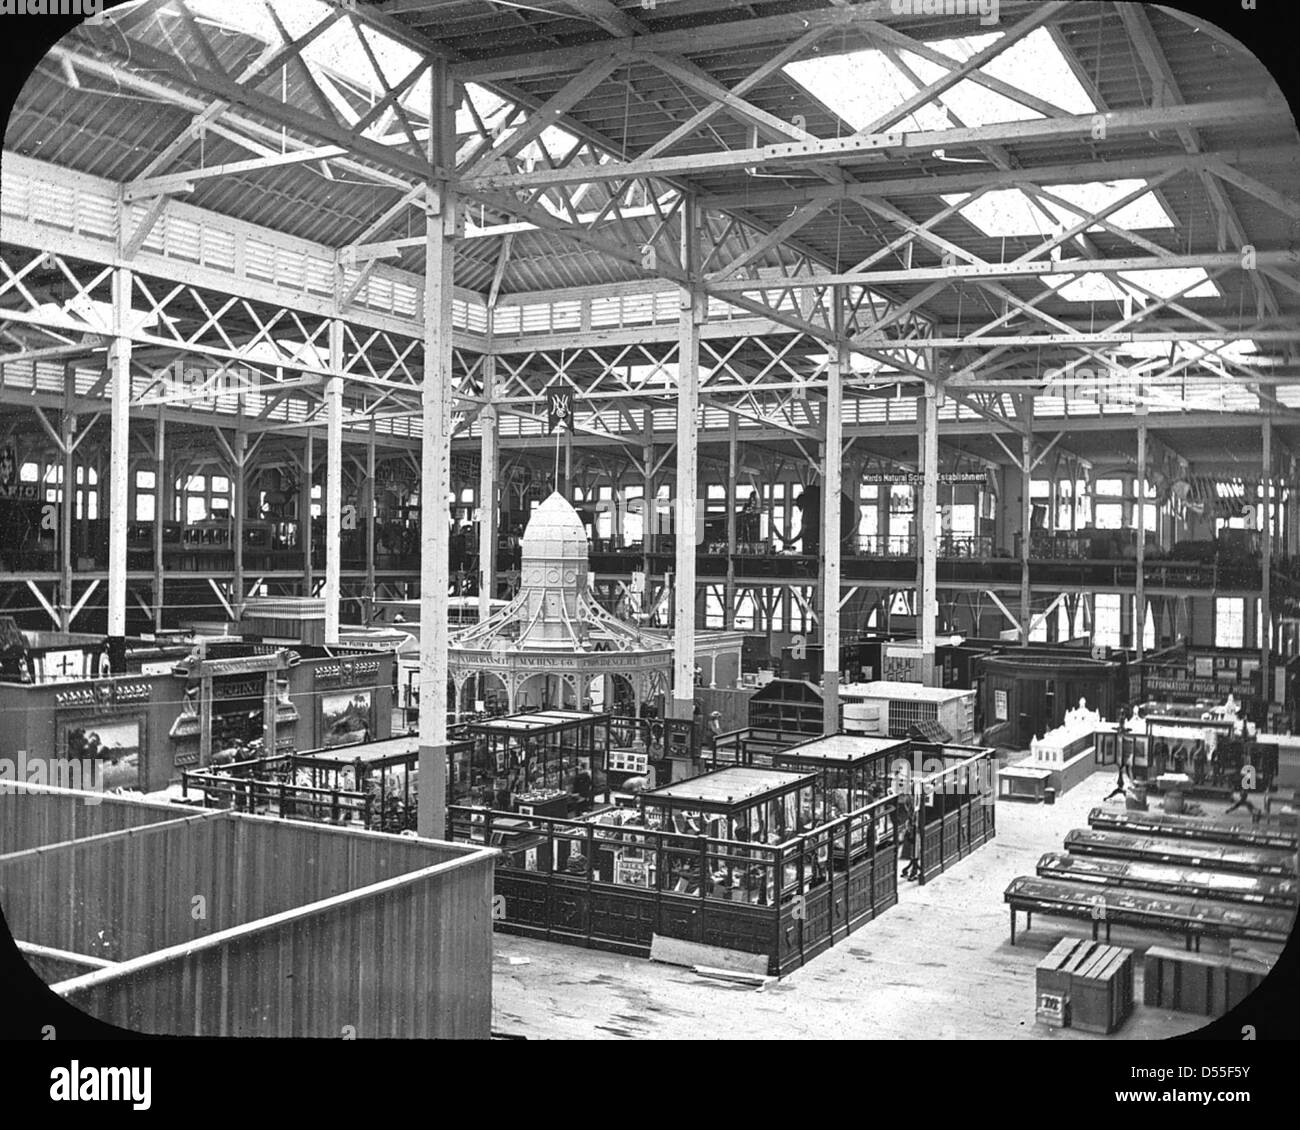 World's Columbian Exposition: Anthropological Building, Chicago, United States, 1893. - Stock Image